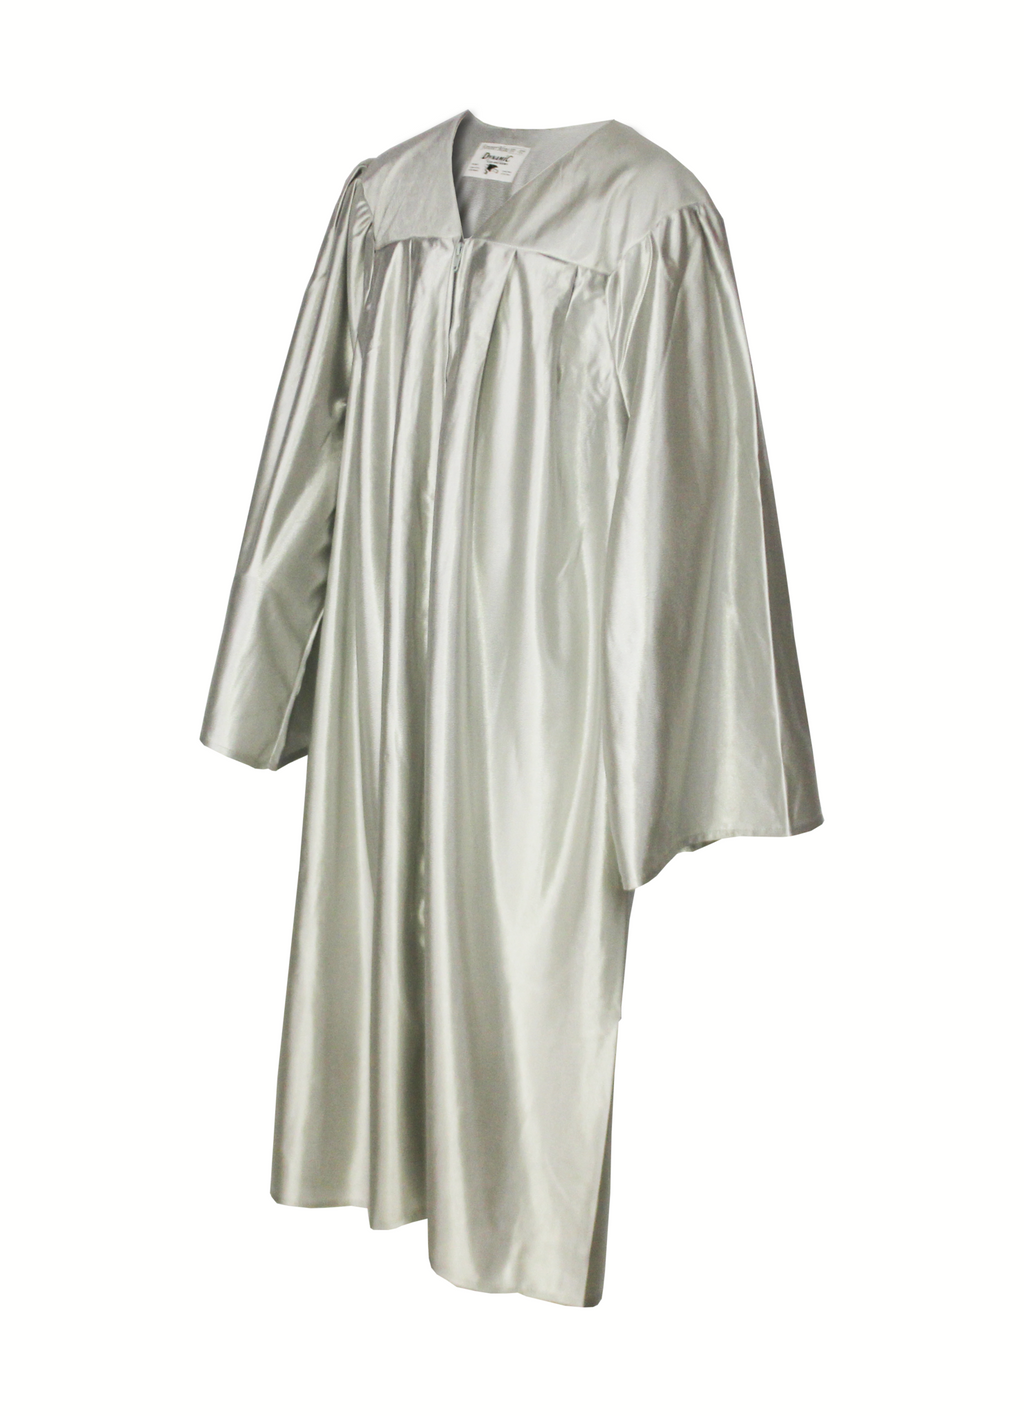 Shiny Silver Choir Gown